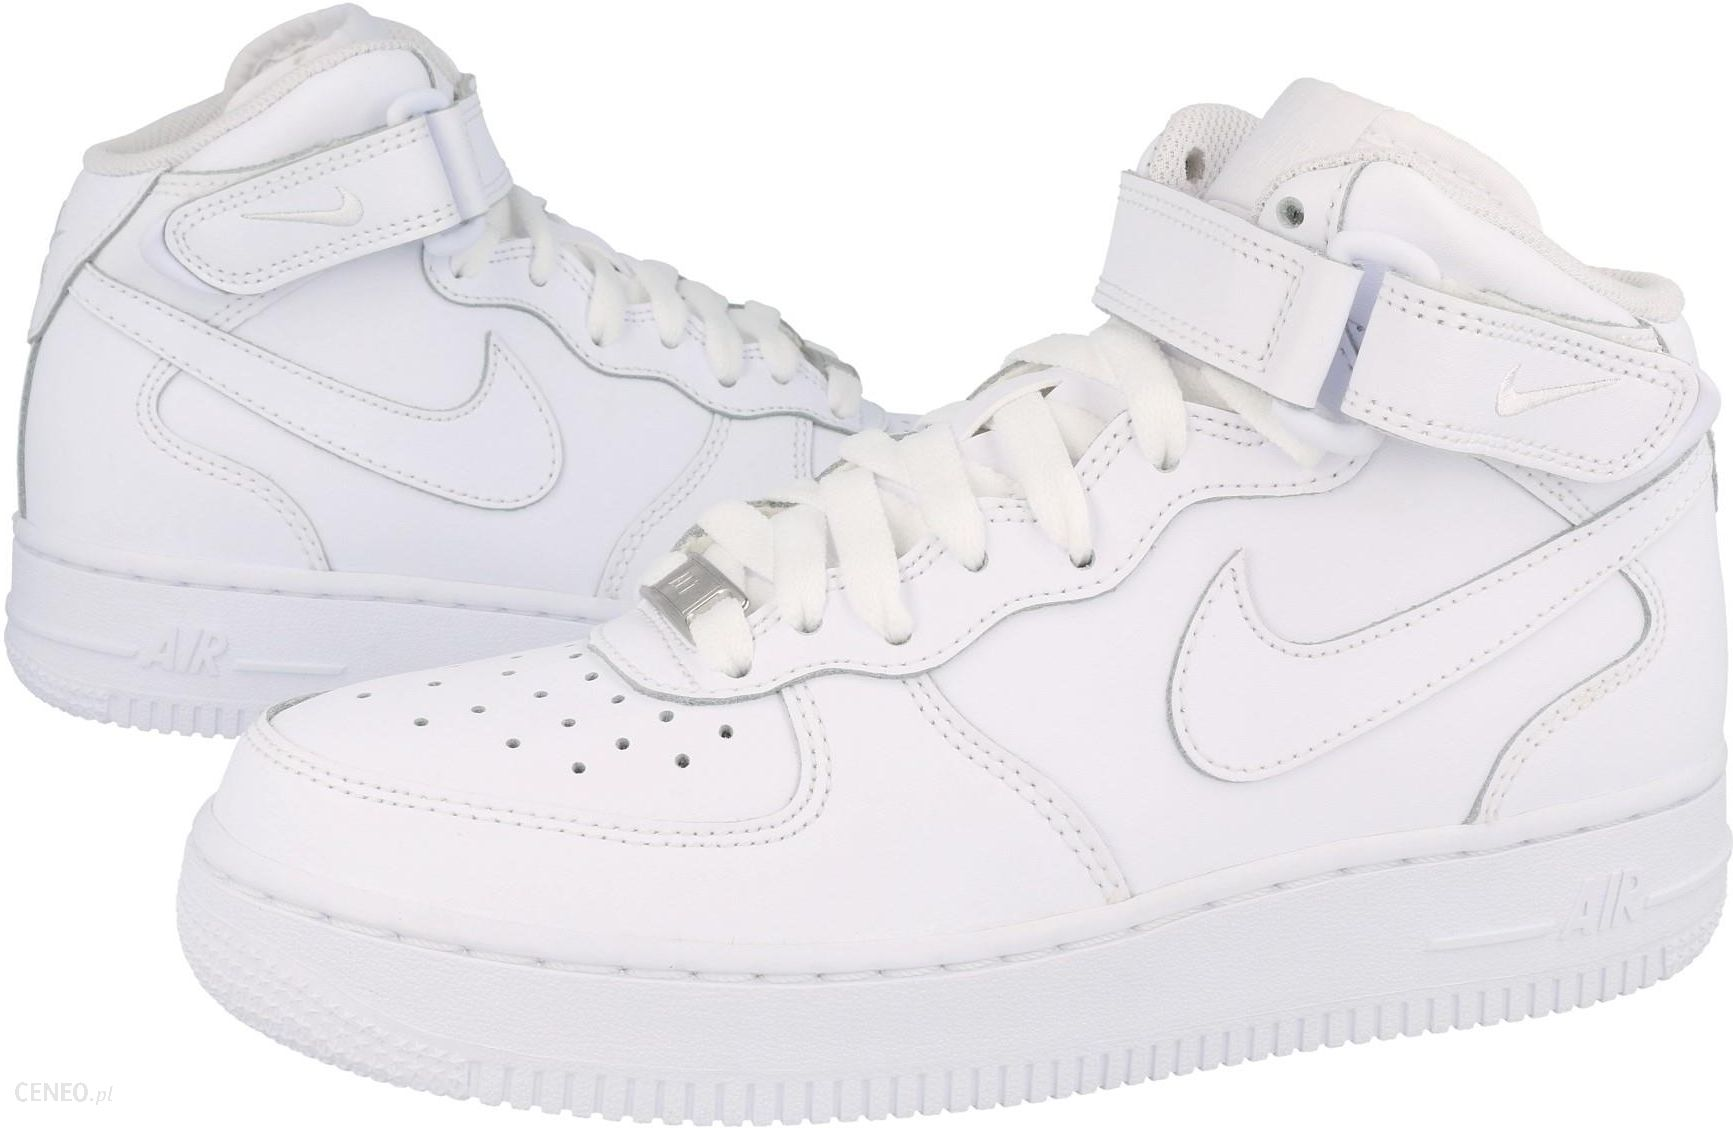 new product f7b8a ddb10 Buty damskie Nike Air Force 1 MID 314195-113 40 - Ceny i opinie ...